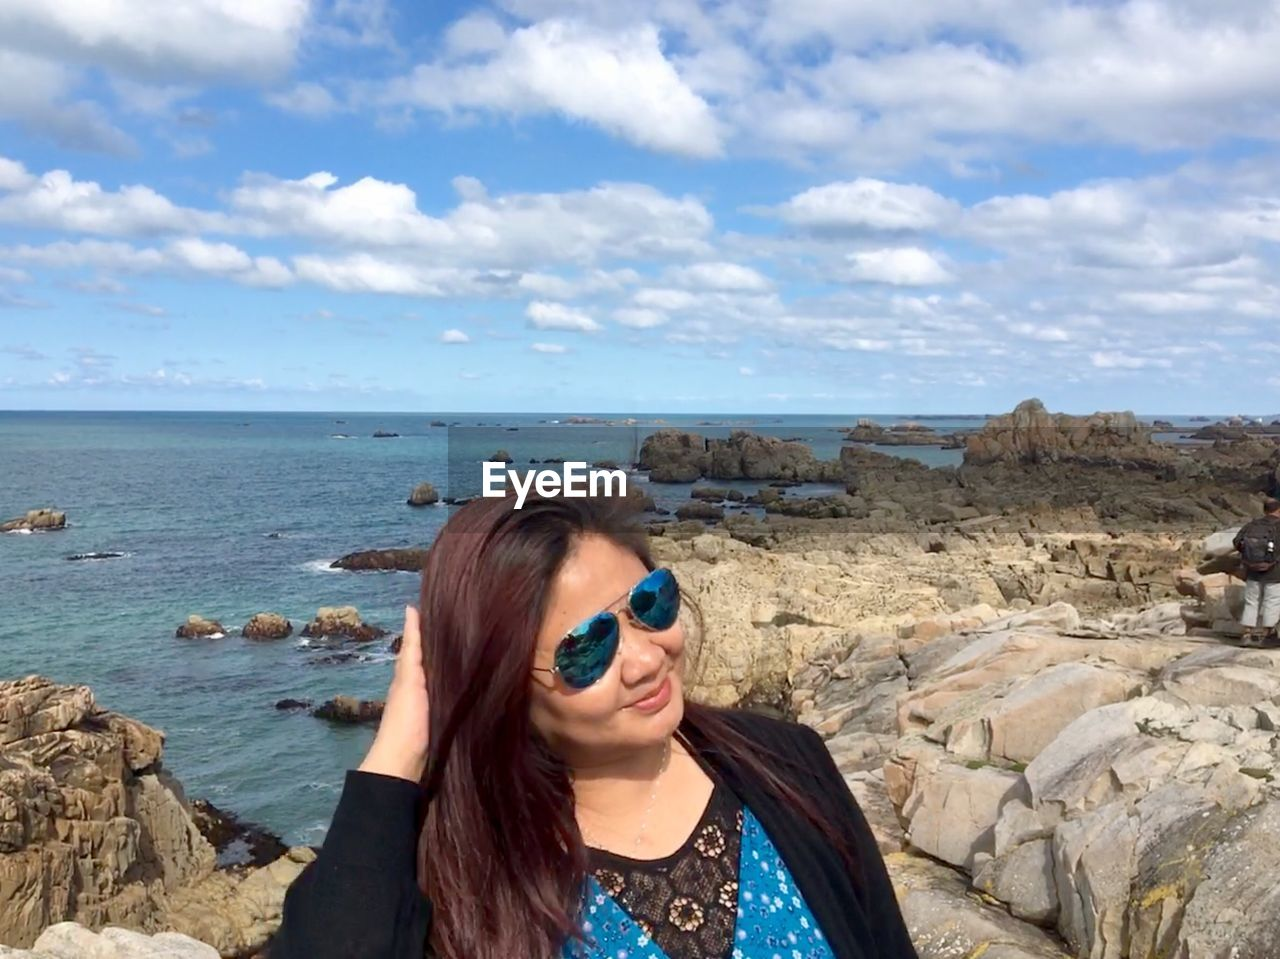 sky, one person, lifestyles, cloud - sky, glasses, real people, water, sunglasses, leisure activity, fashion, sea, beauty in nature, young adult, scenics - nature, day, nature, front view, young women, land, hairstyle, outdoors, hair, horizon over water